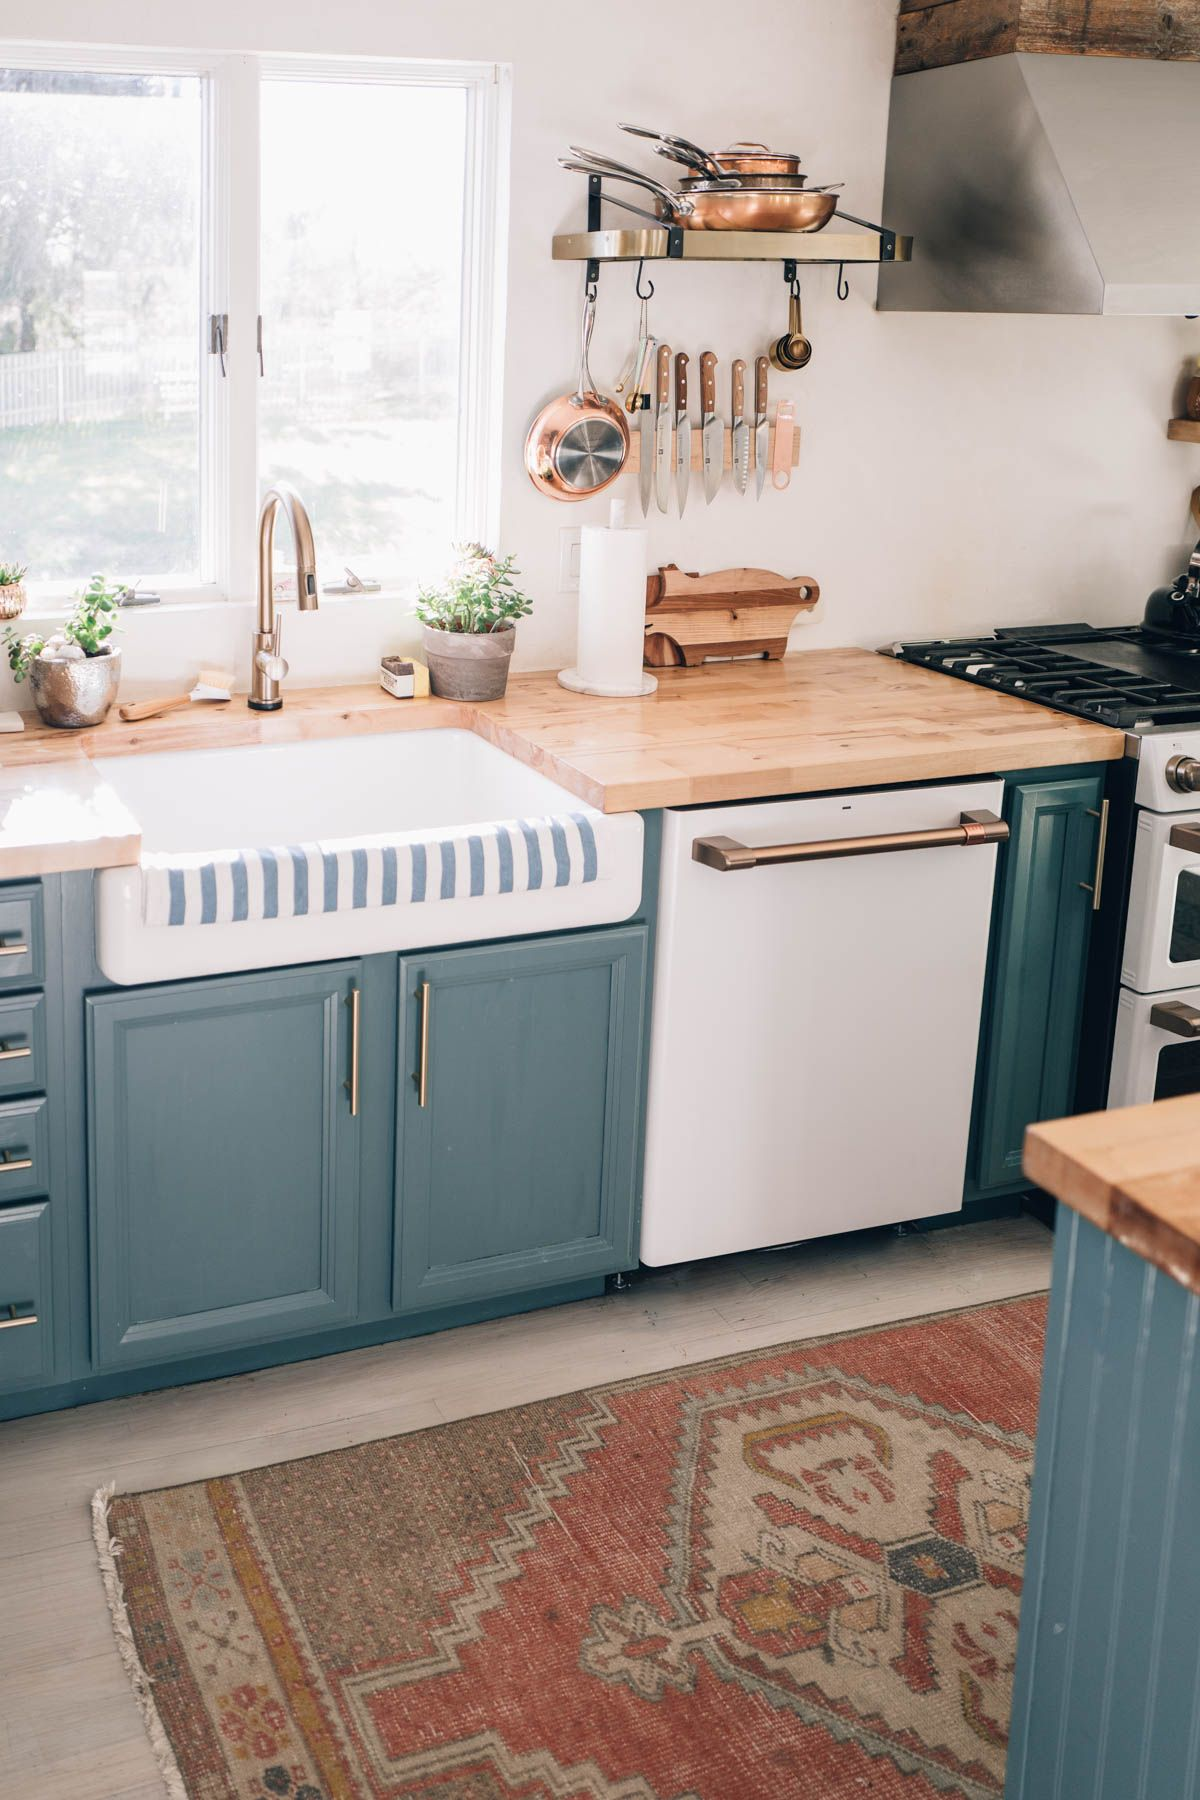 customize your kitchen design with the cafeappliance dishwasher in matte white with brushed on kitchen remodel appliances id=39206